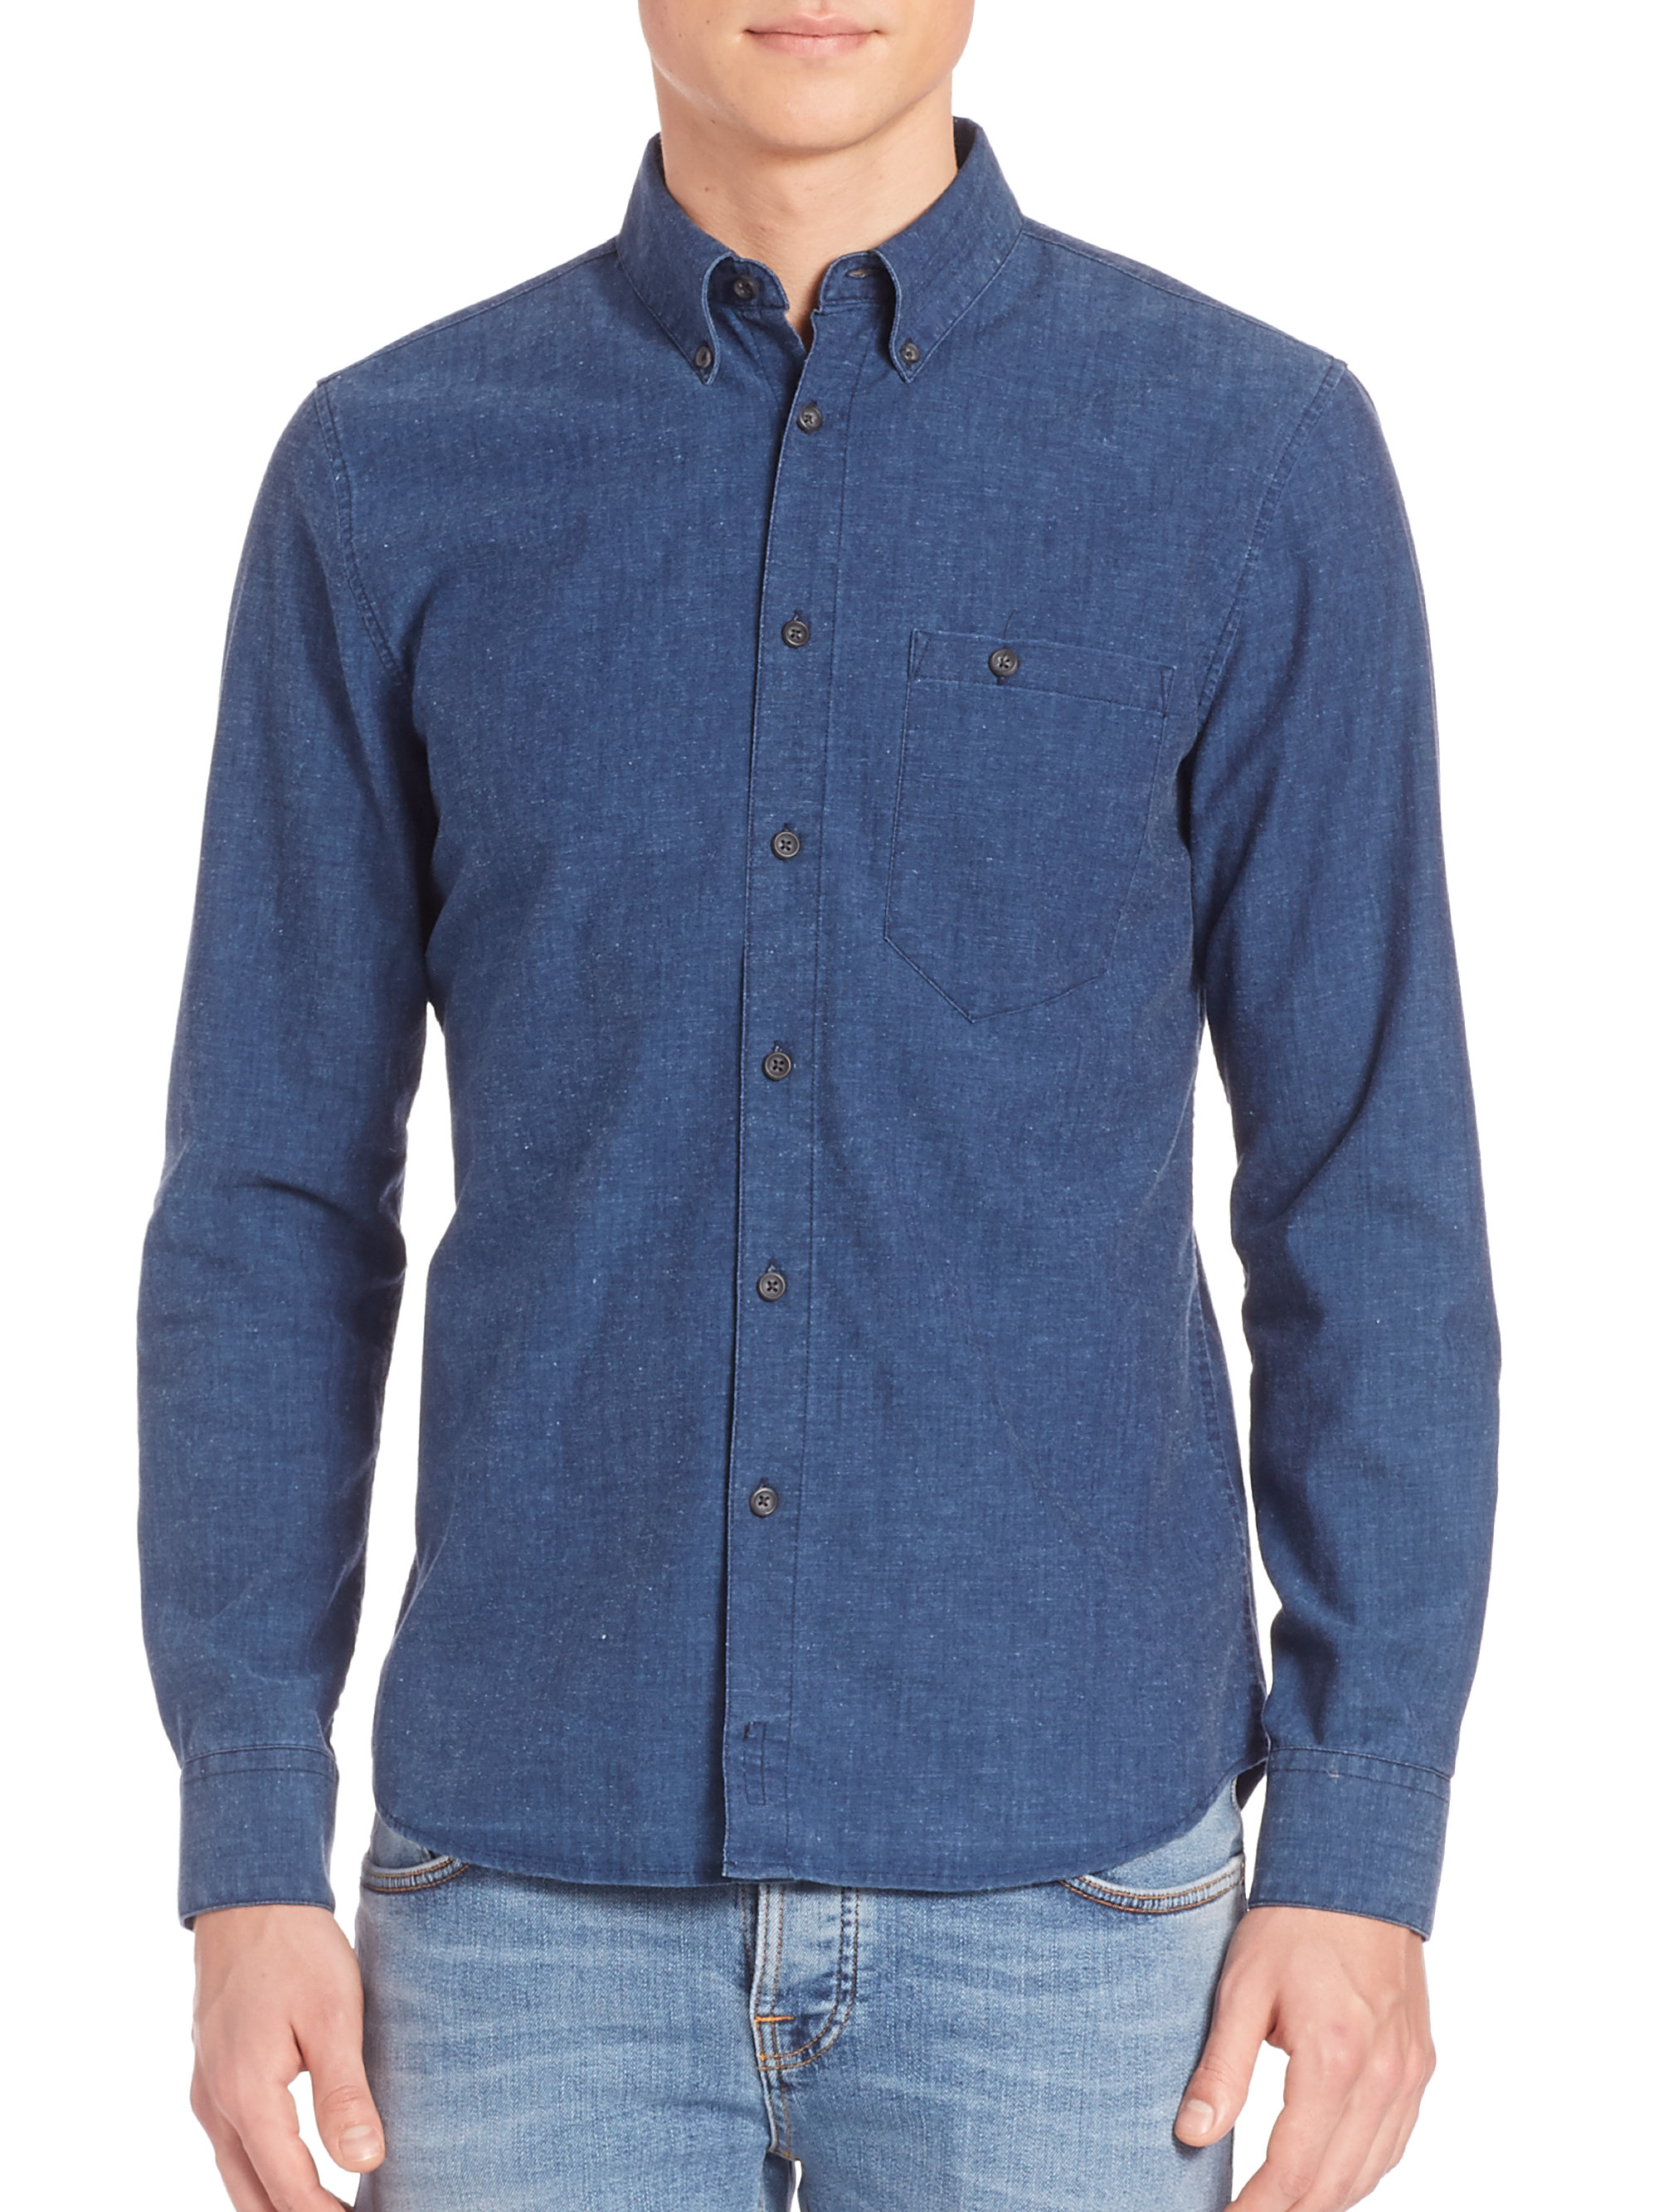 Nudie Jeans Organic Cotton Woven Shirt In Blue For Men Lyst